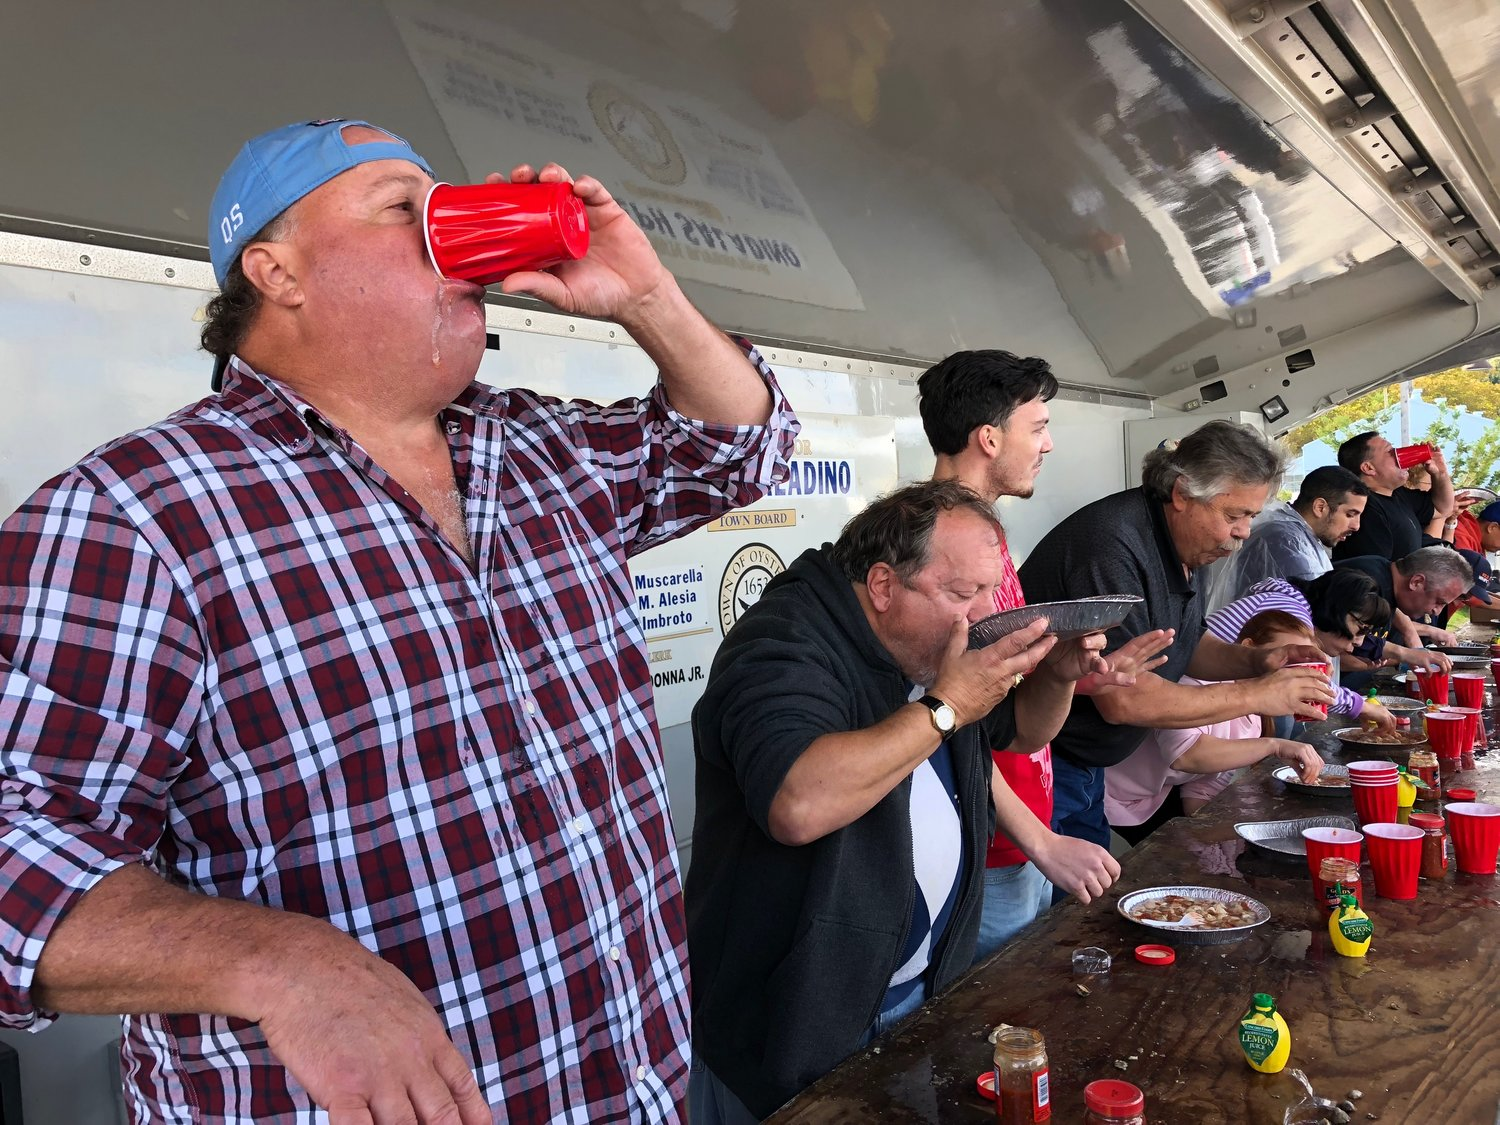 Shawn Leonard, of Cold Spring Harbor, slurped down a cup of briny oyster alongside other contestants at the 2018 Oyster Festival oyster eating contest.